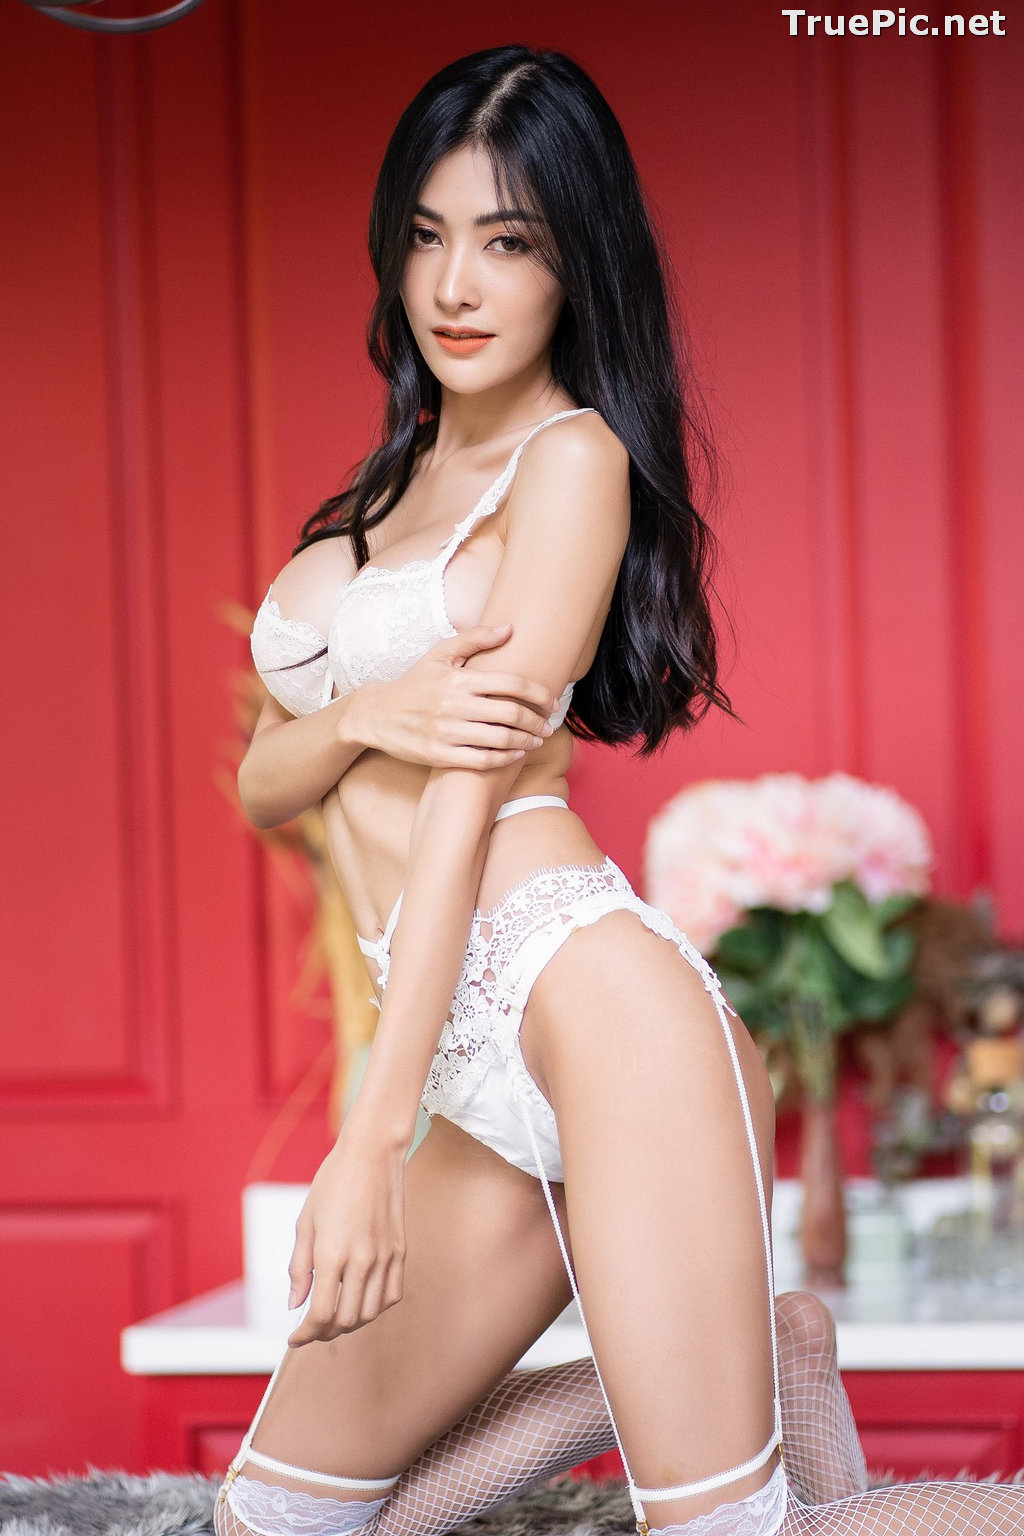 Image Thailand Model – Mutmai Onkanya Pakpean – Beautiful Picture 2020 Collection - TruePic.net - Picture-8